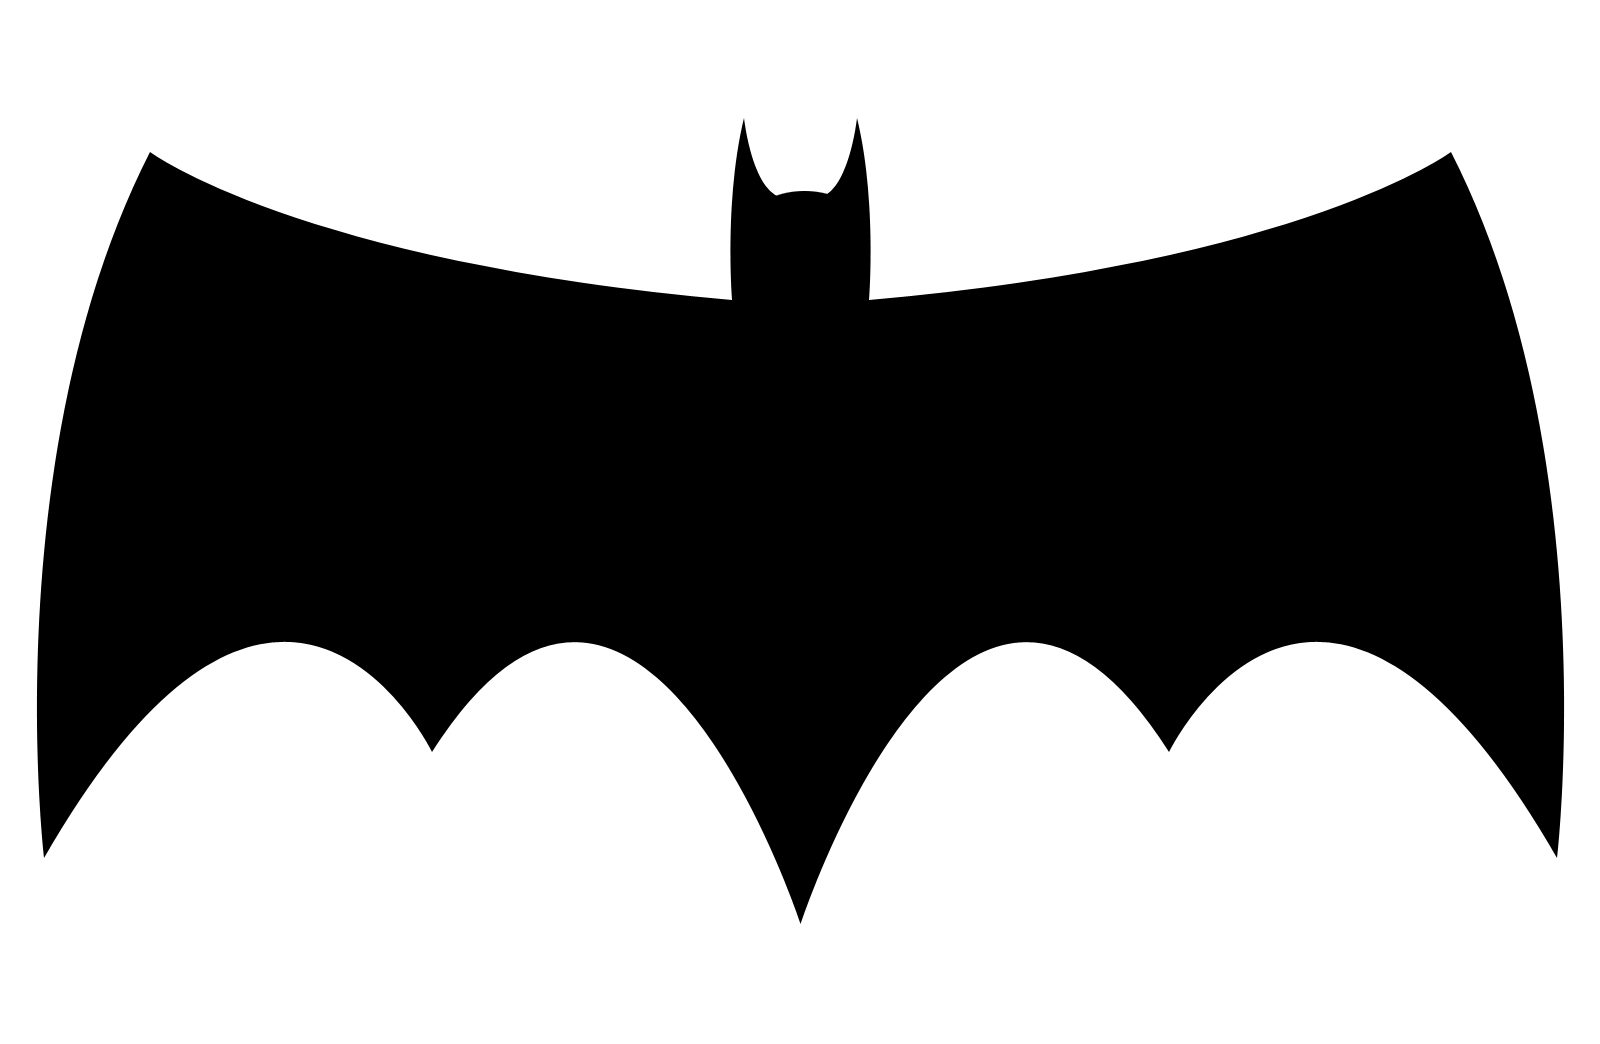 Free Pictures Of Batman Symbol Download Free Clip Art